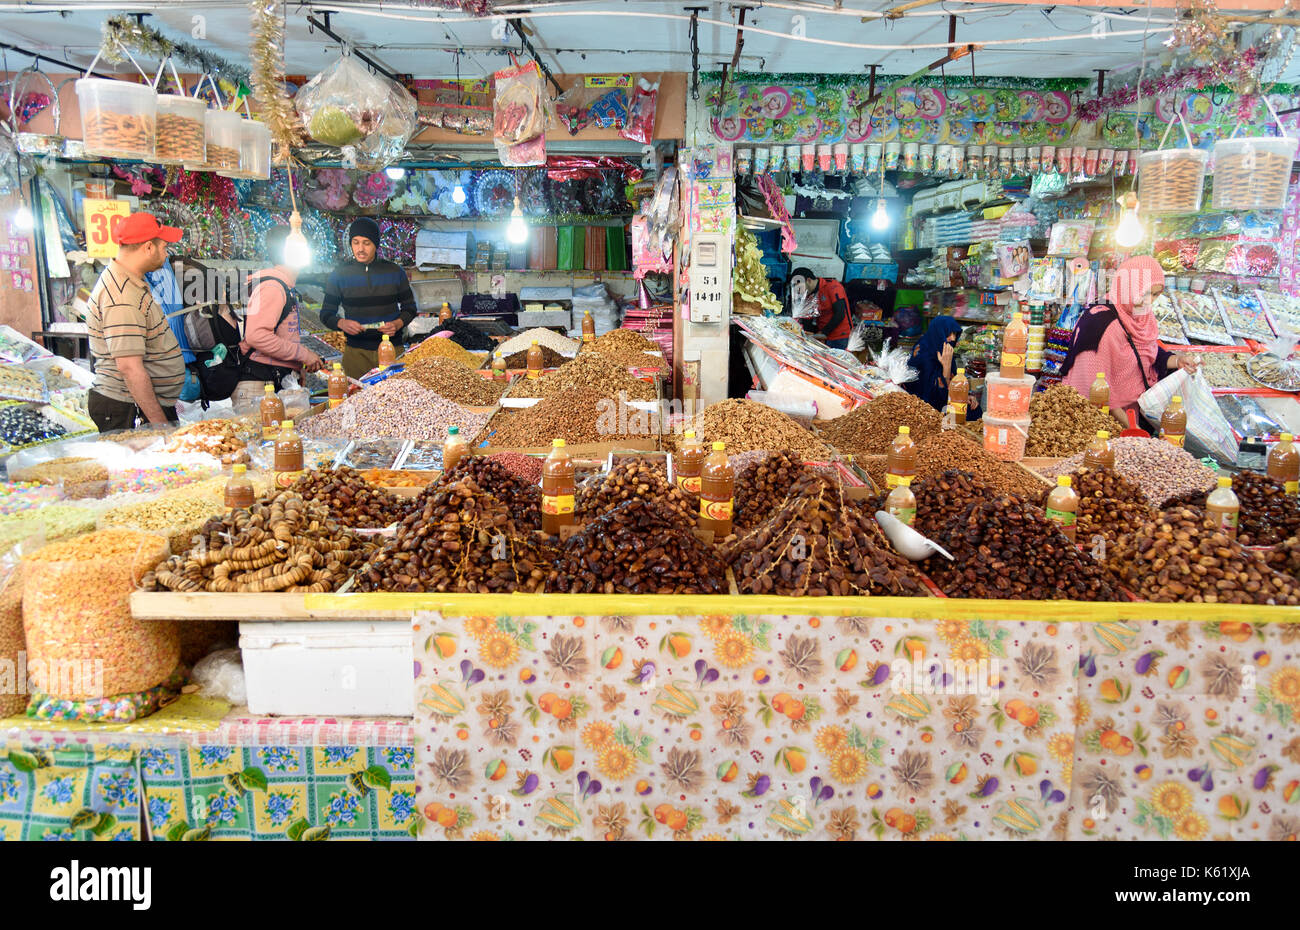 Tiznit. Morocco - December 27, 2016: On local market in Tiznit. Moroccan people buy different products Stock Photo